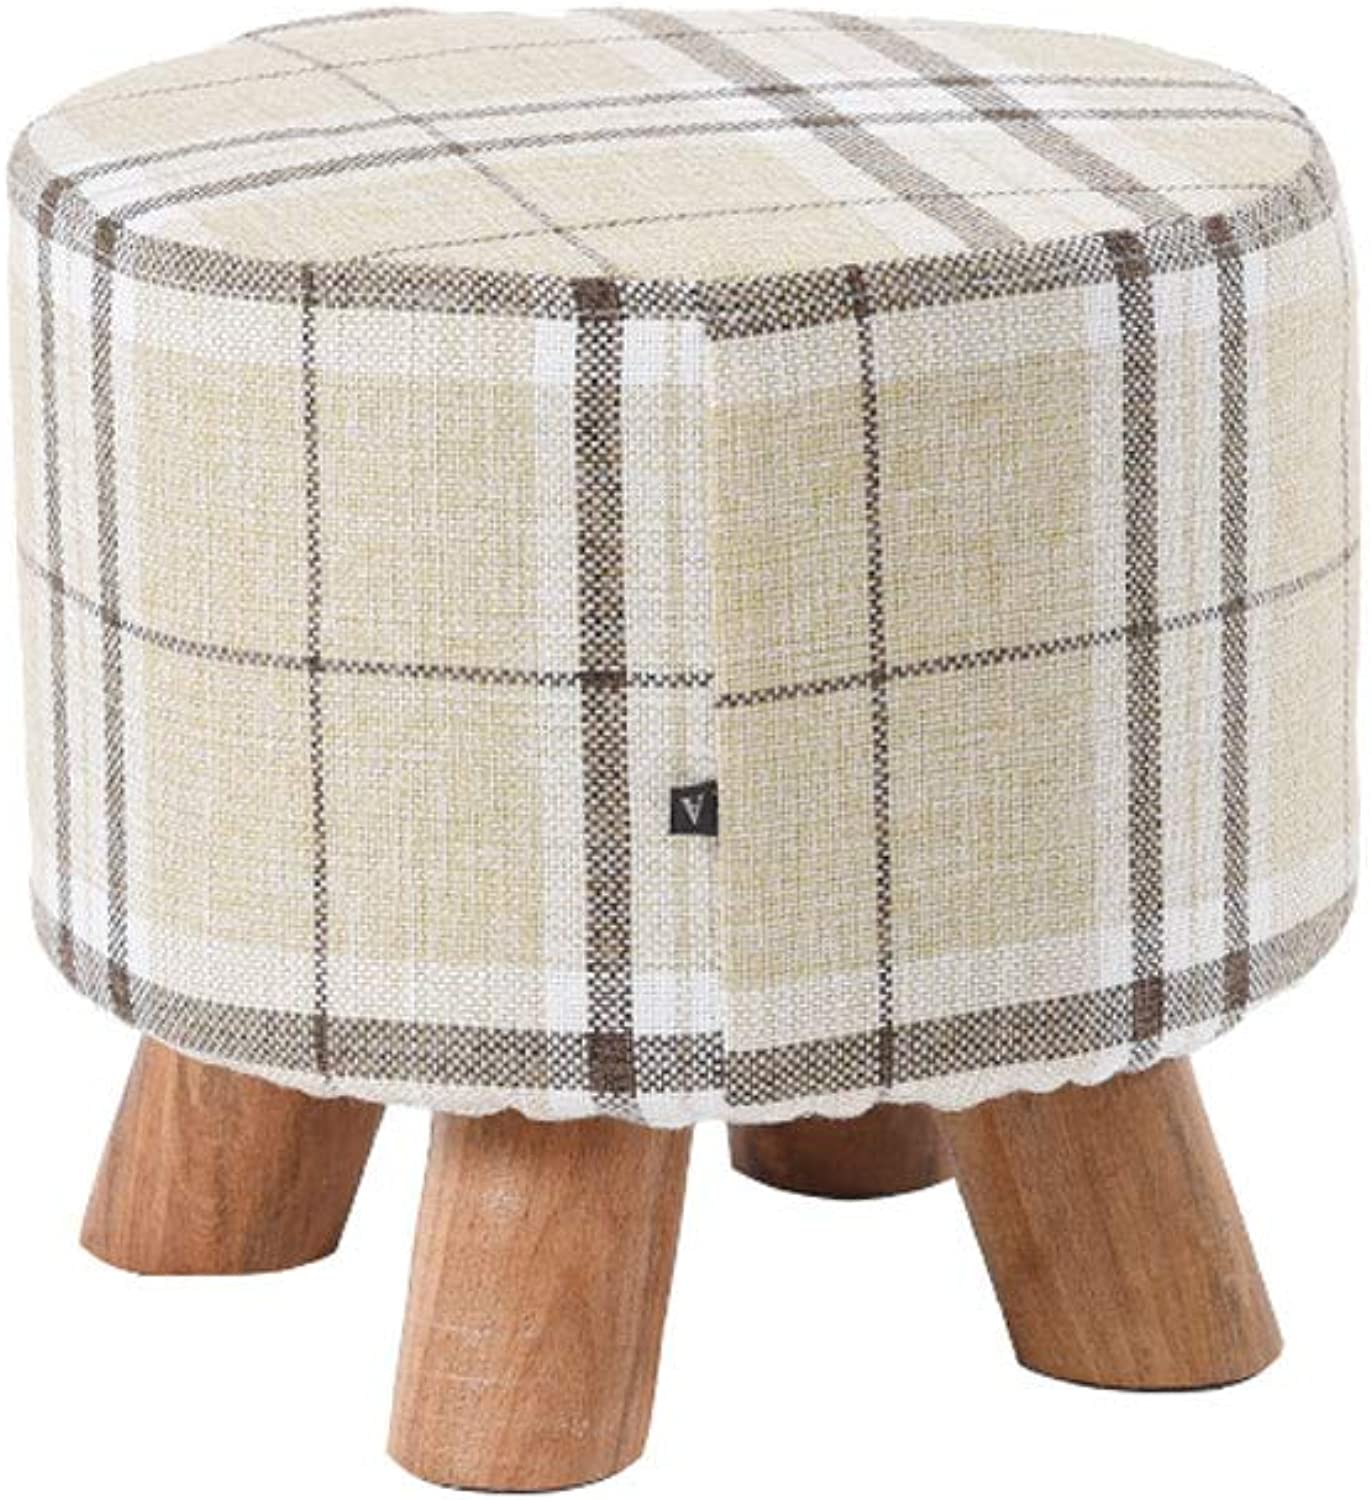 Solid Wood Stool, Home Round Fabric Sofa Stool Living Room Low Stool Change shoes Bench Wooden Leg Footstool (color   Striped Lattice)